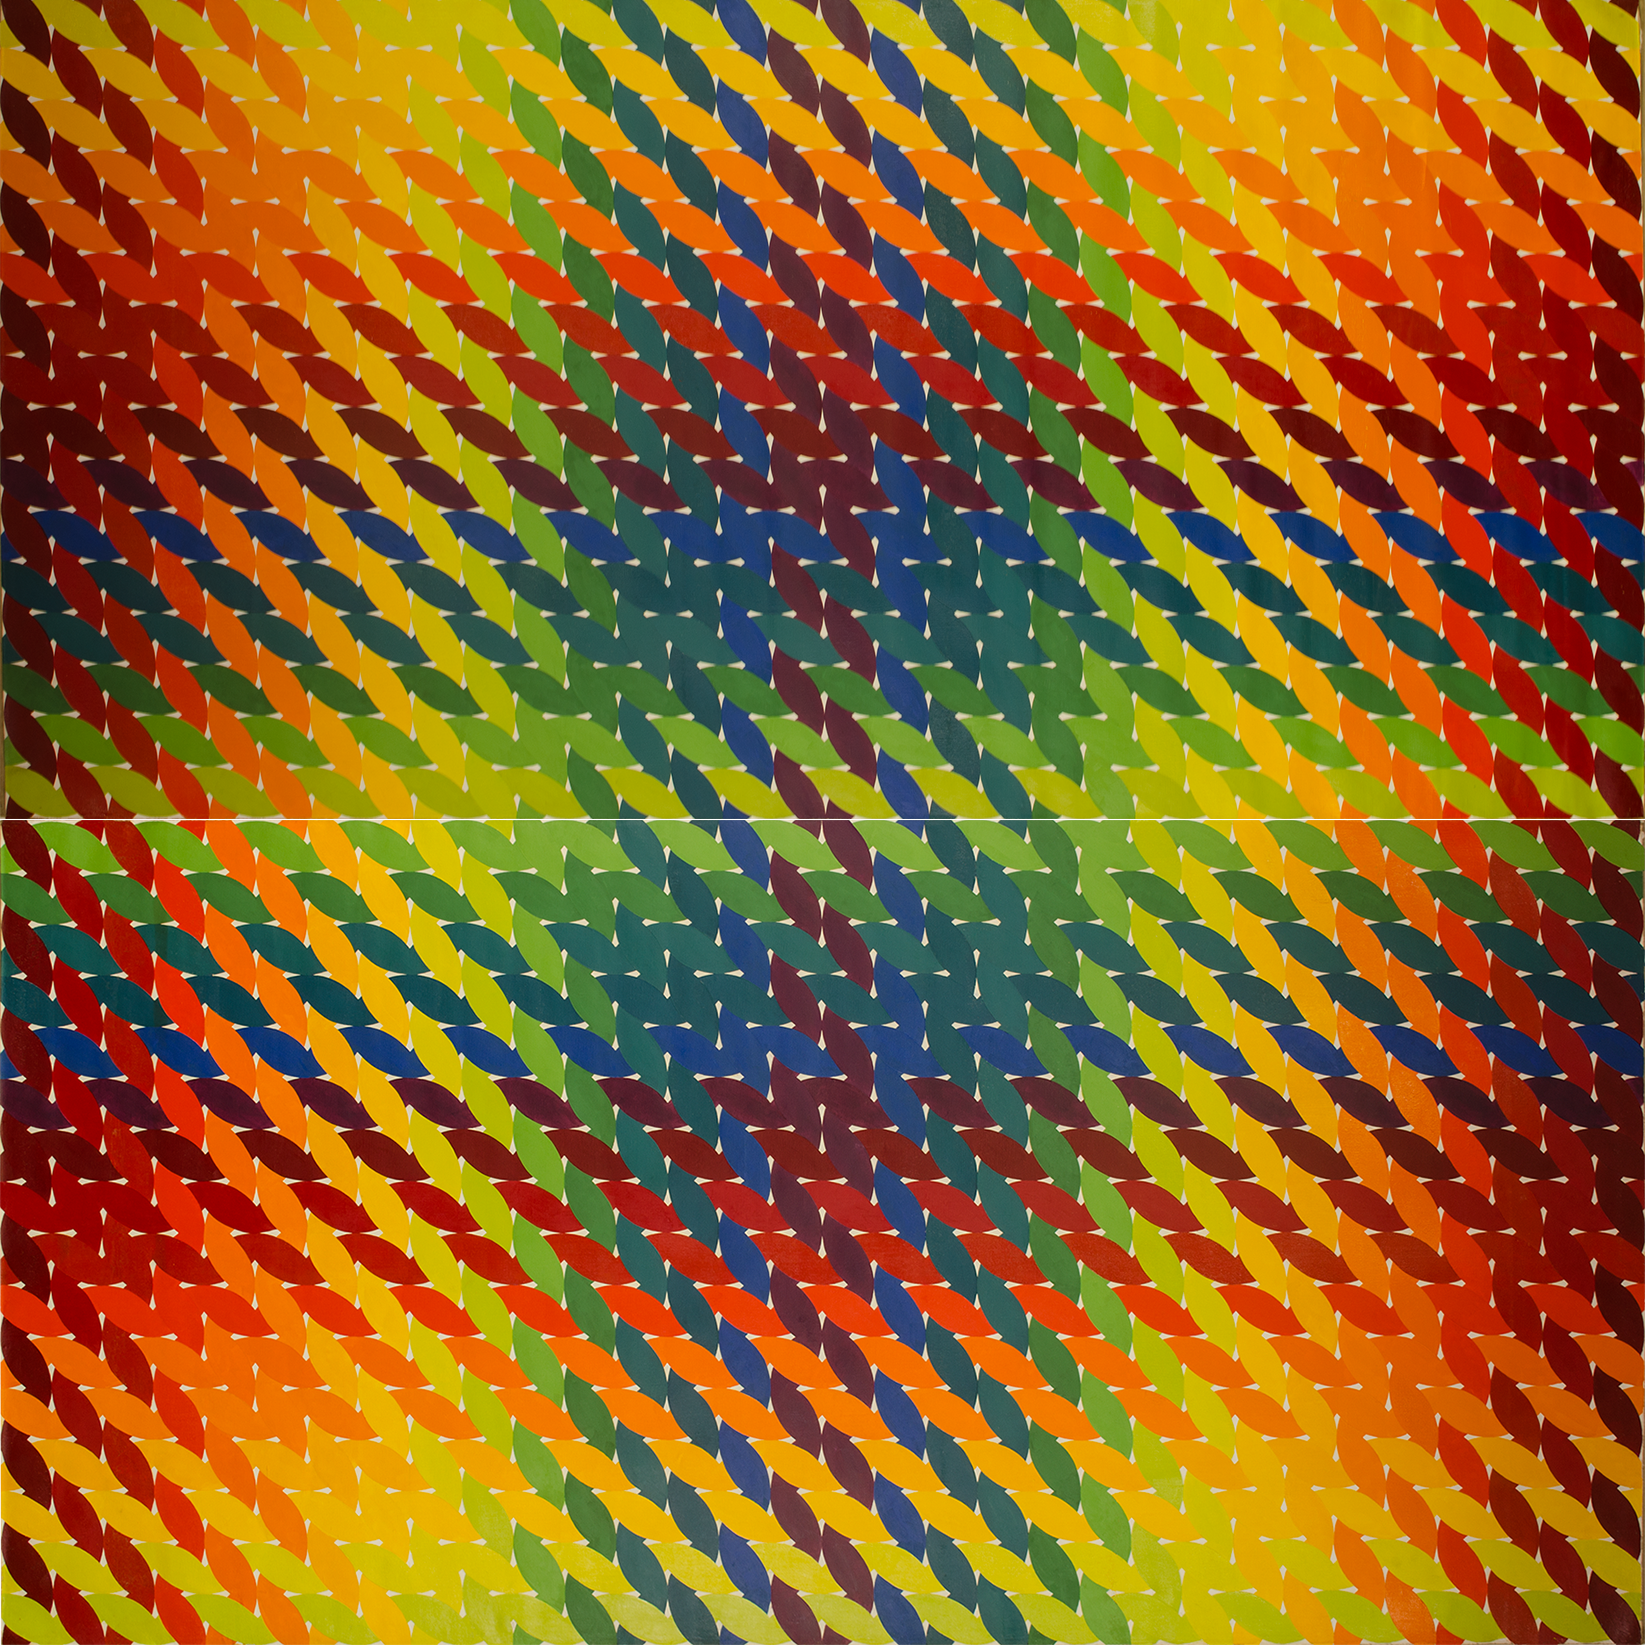 "WEAVE room 1972-1975©- left side panel 96"" x 96"" [243.84 cm x 243.84 cm]"